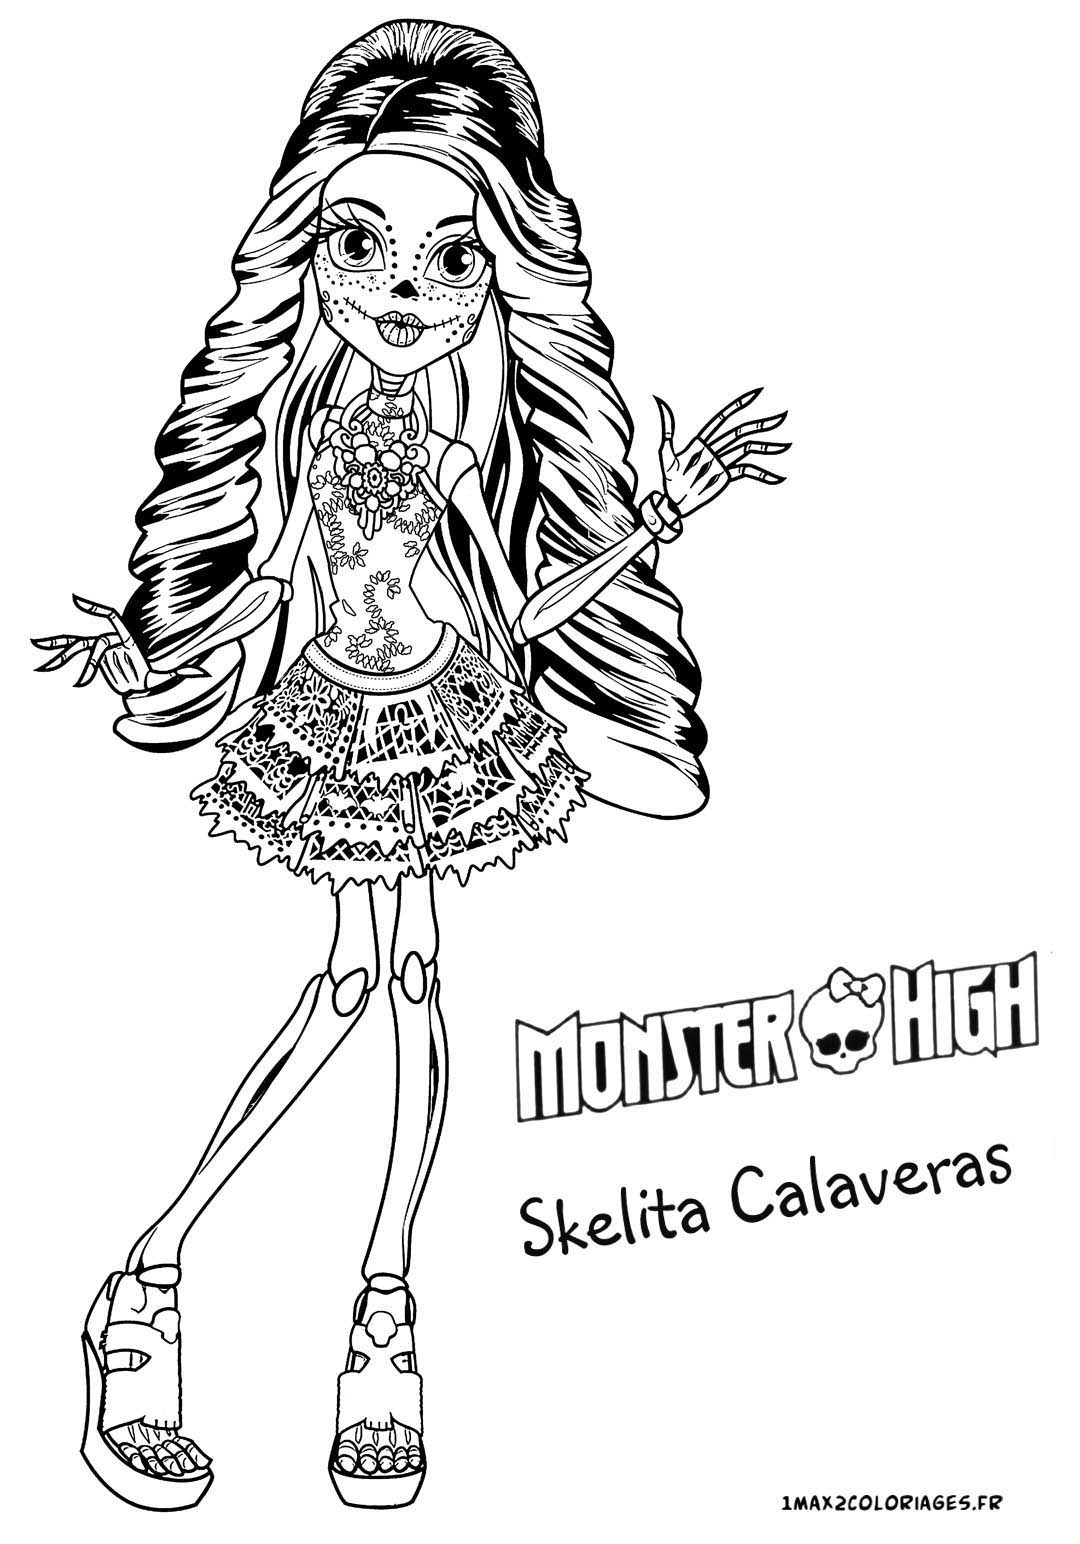 Coloriages Monster High - Coloriage Monster High concernant Coloriage Gratuit Monster High À Imprimer